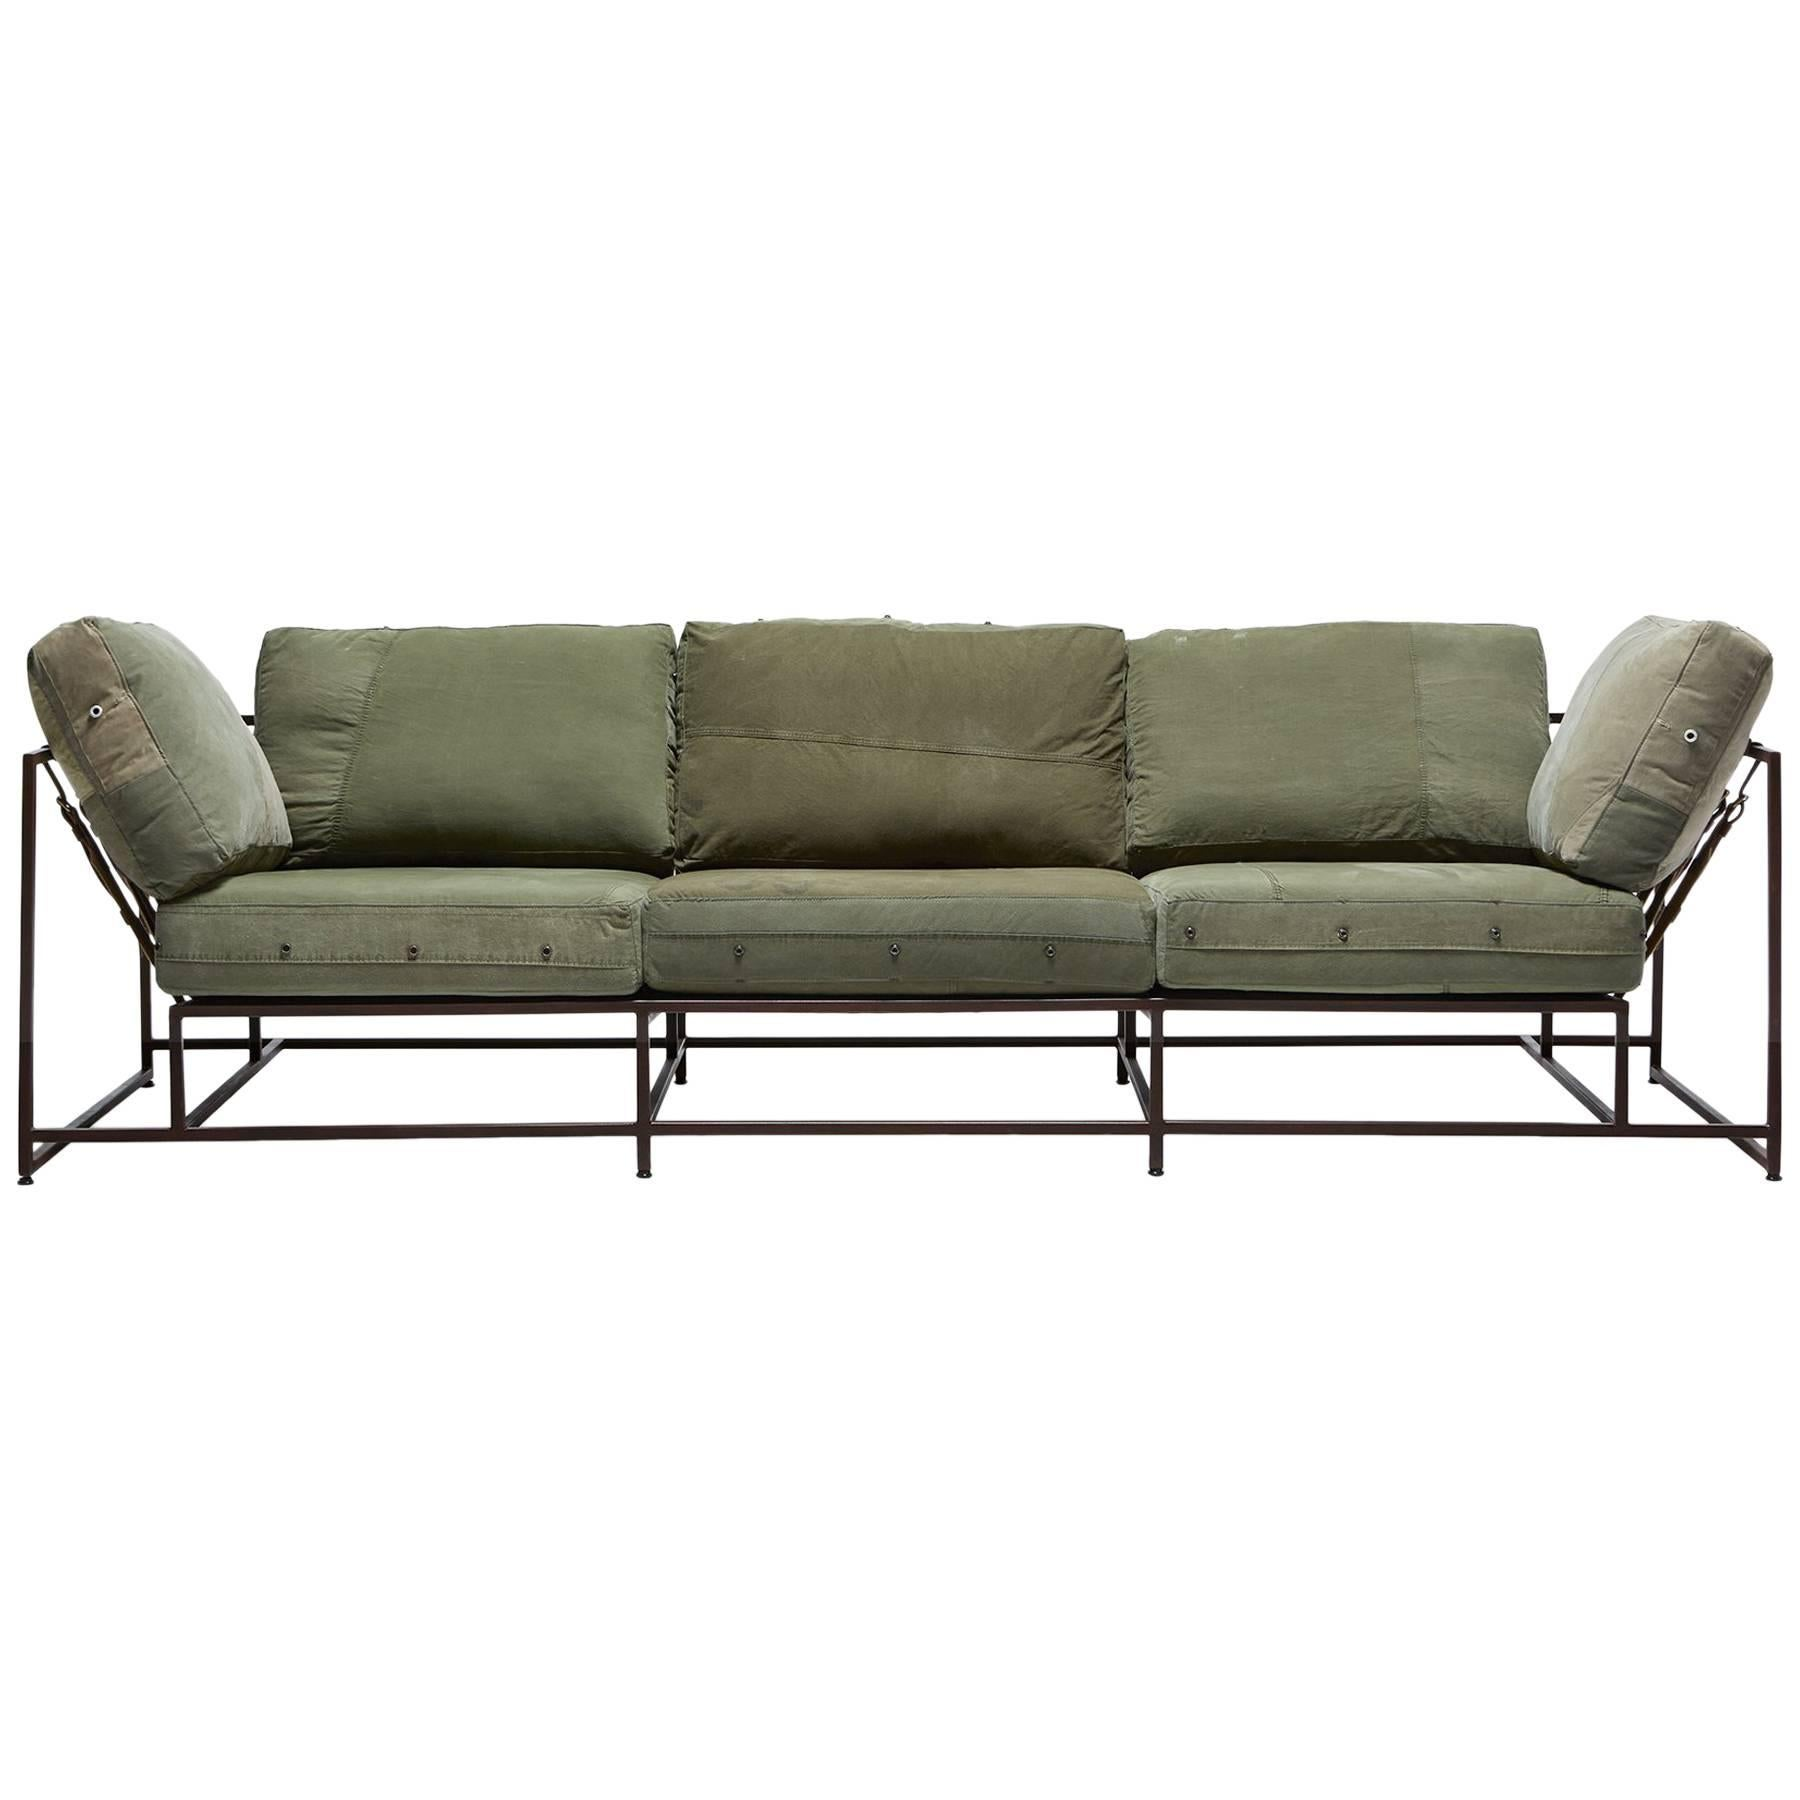 Vintage Military Canvas and Marbled Rust Sofa